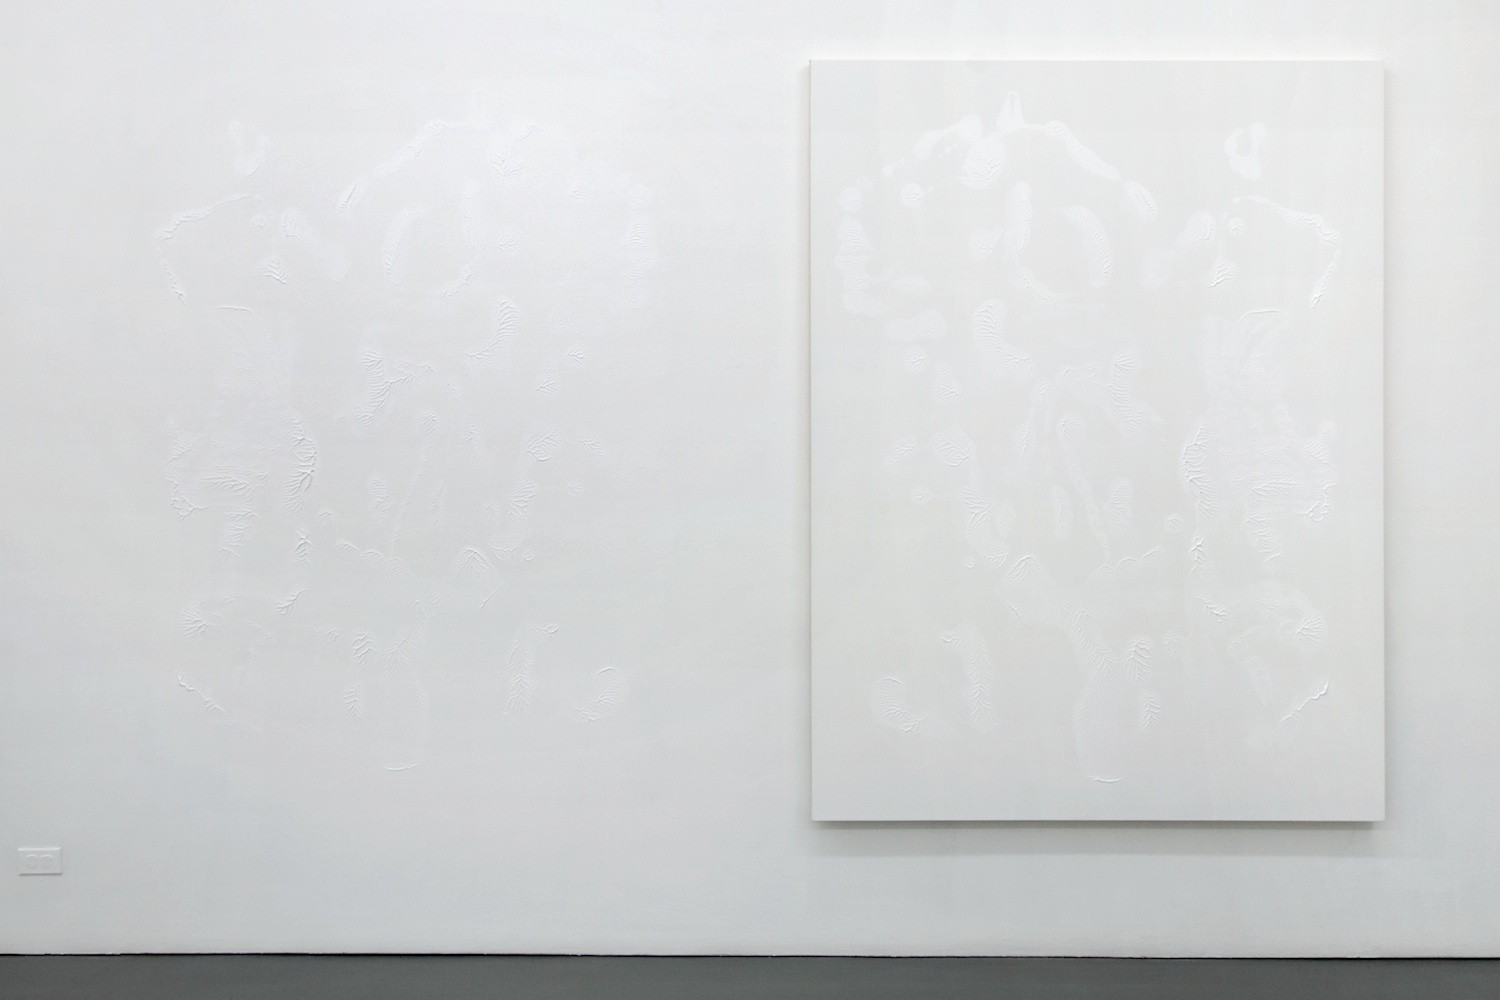 Dan Rees  Zinc White  2012 Acrylic paint on canvas, imprint on wall 78 ¾h x 59 ¹⁄₁₆w in DR002